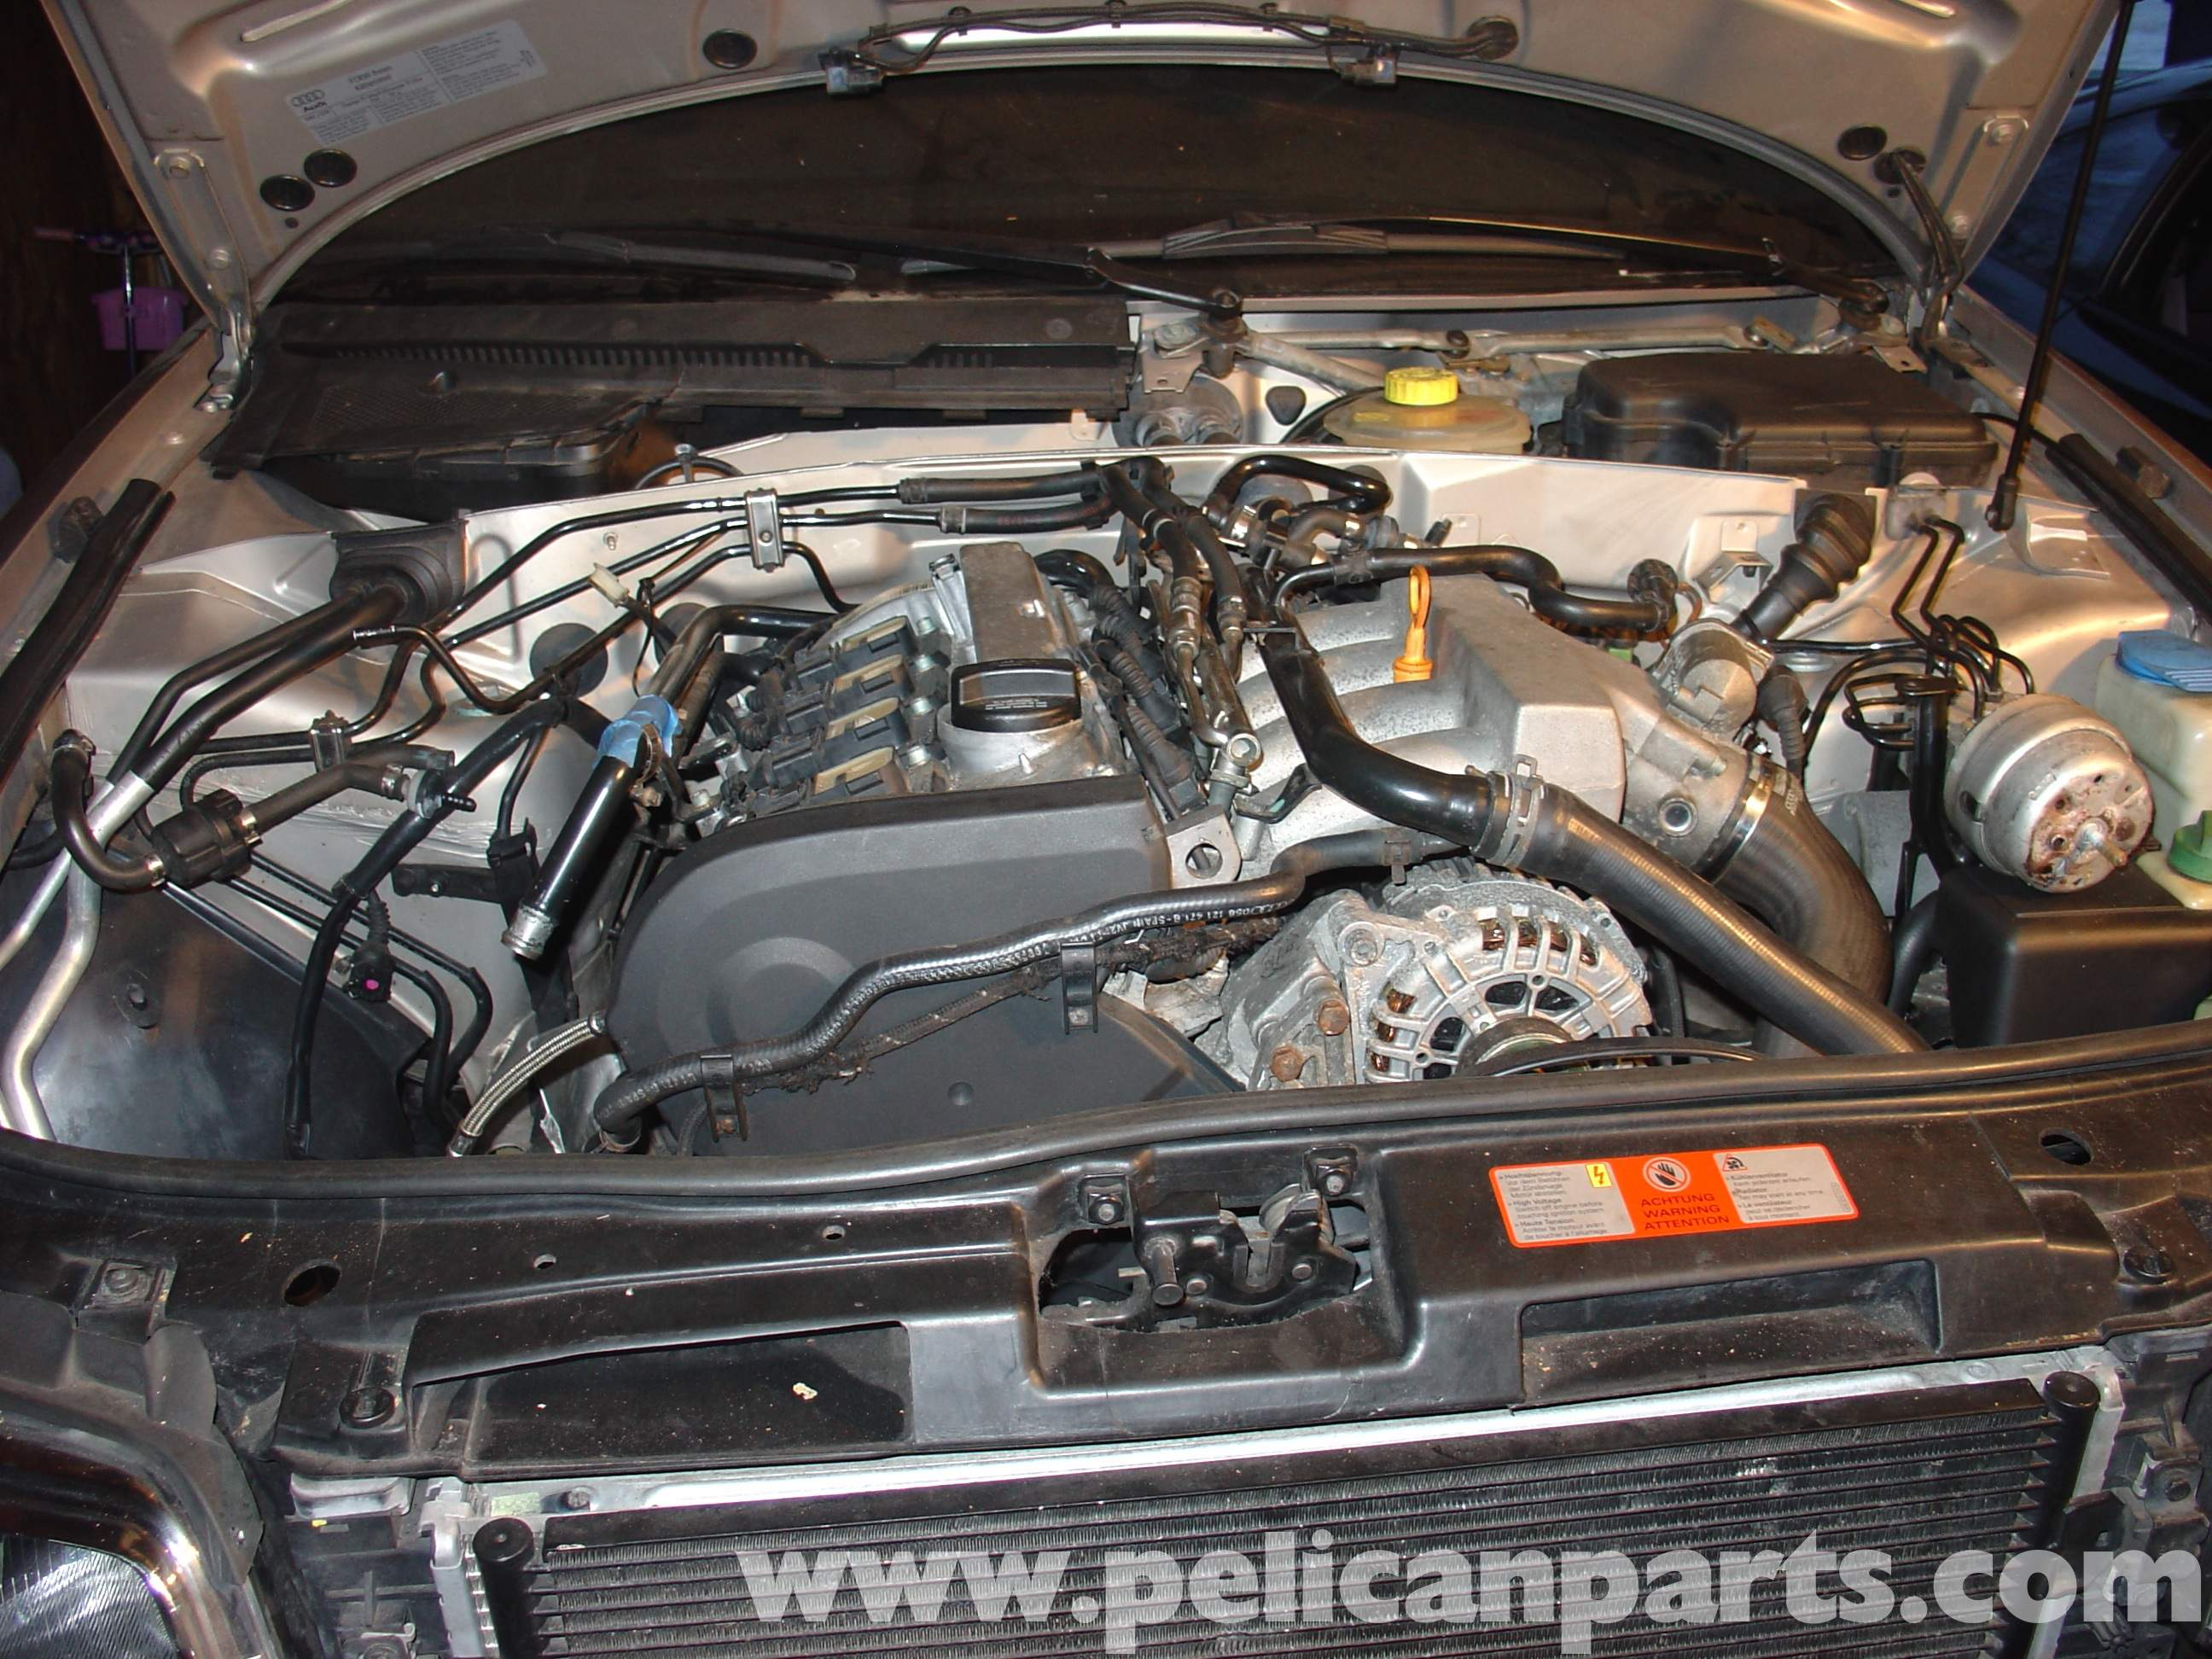 Audi B5a4 18t Transmission Multifunction Switch Replacement Writeup